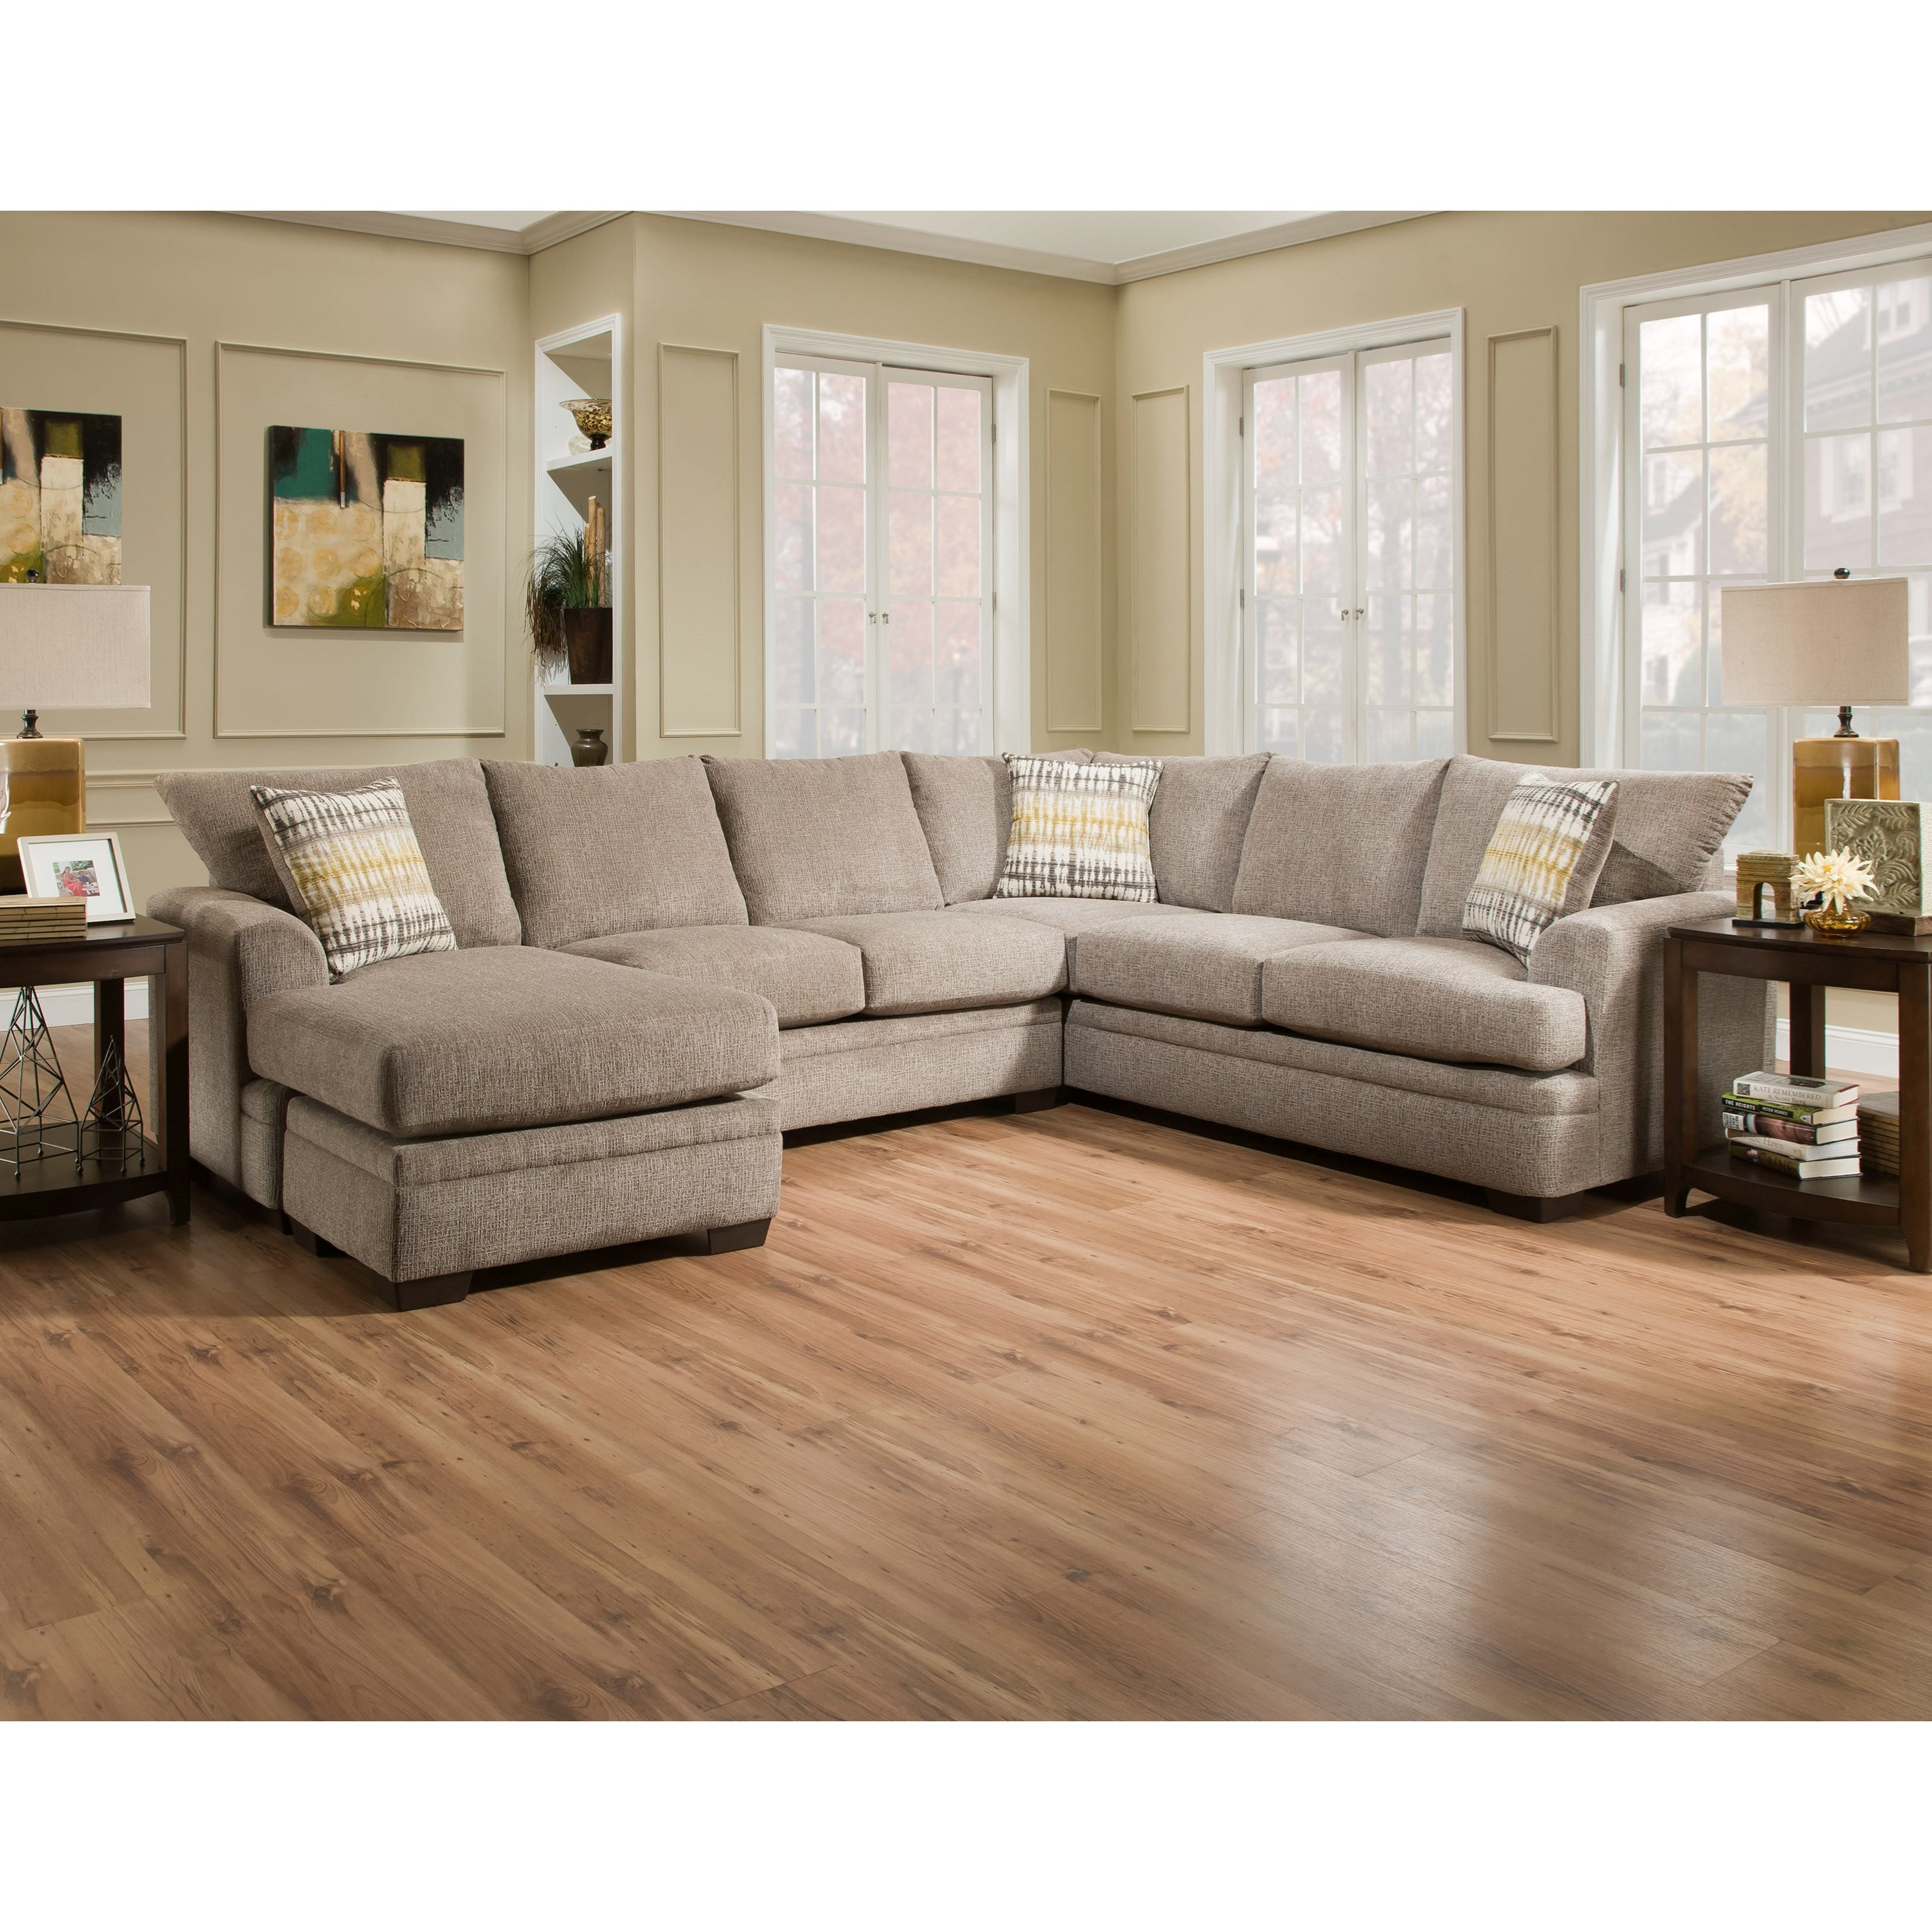 peak living 6800 sectional sofa with